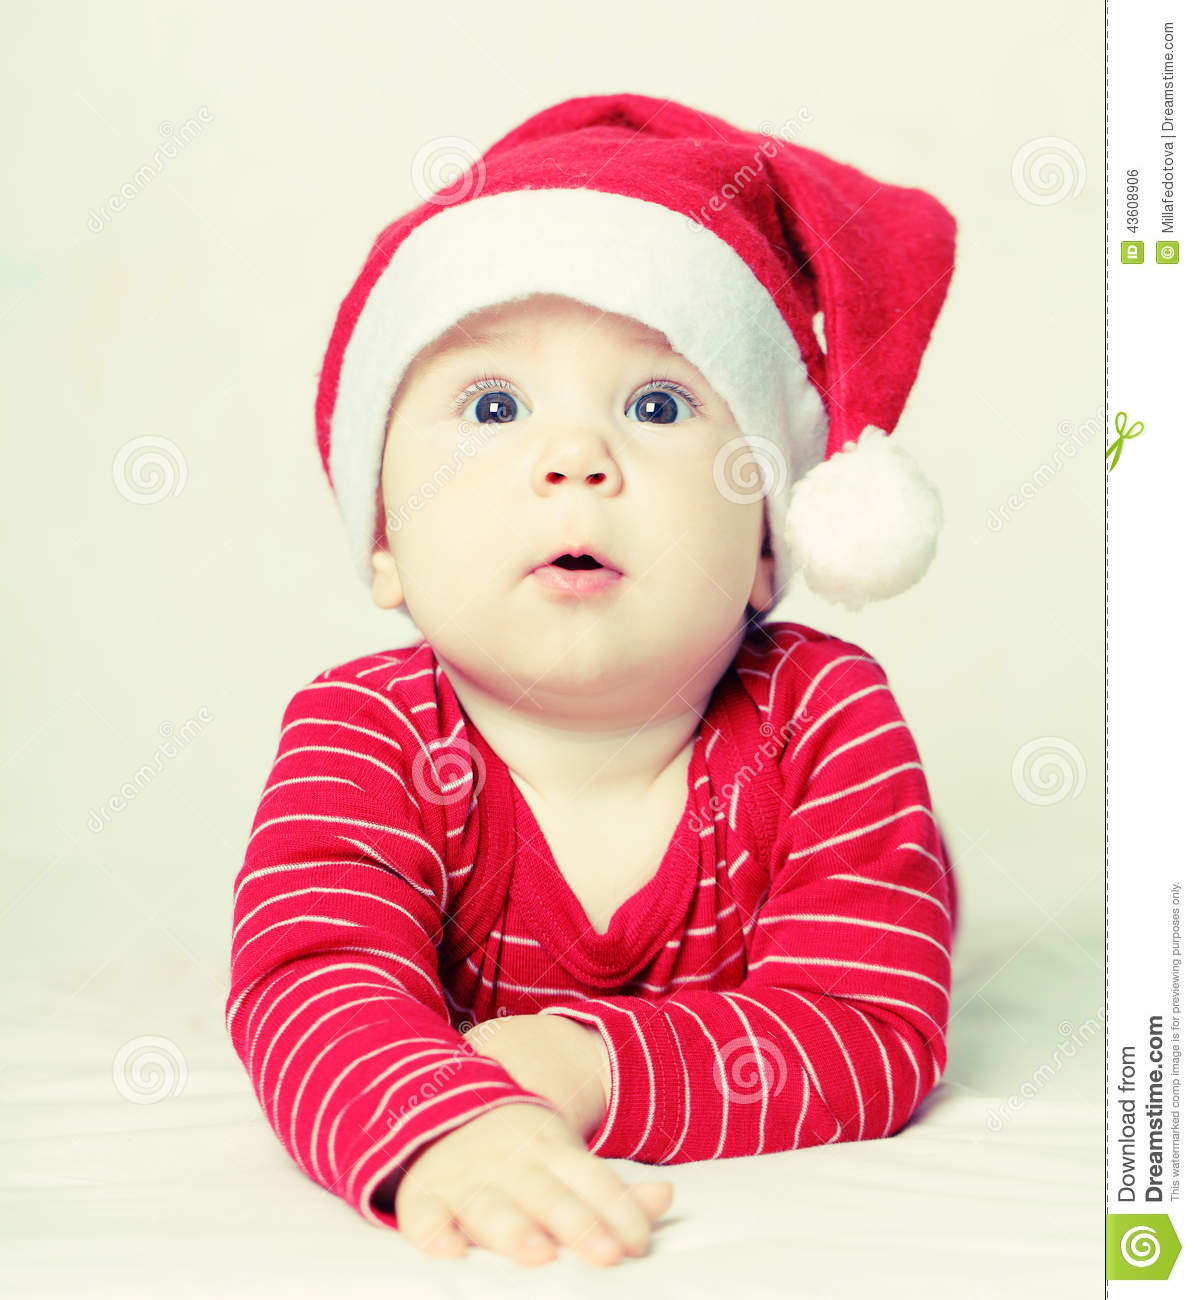 happy new year baby in santa hat, christmas stock photo - image of